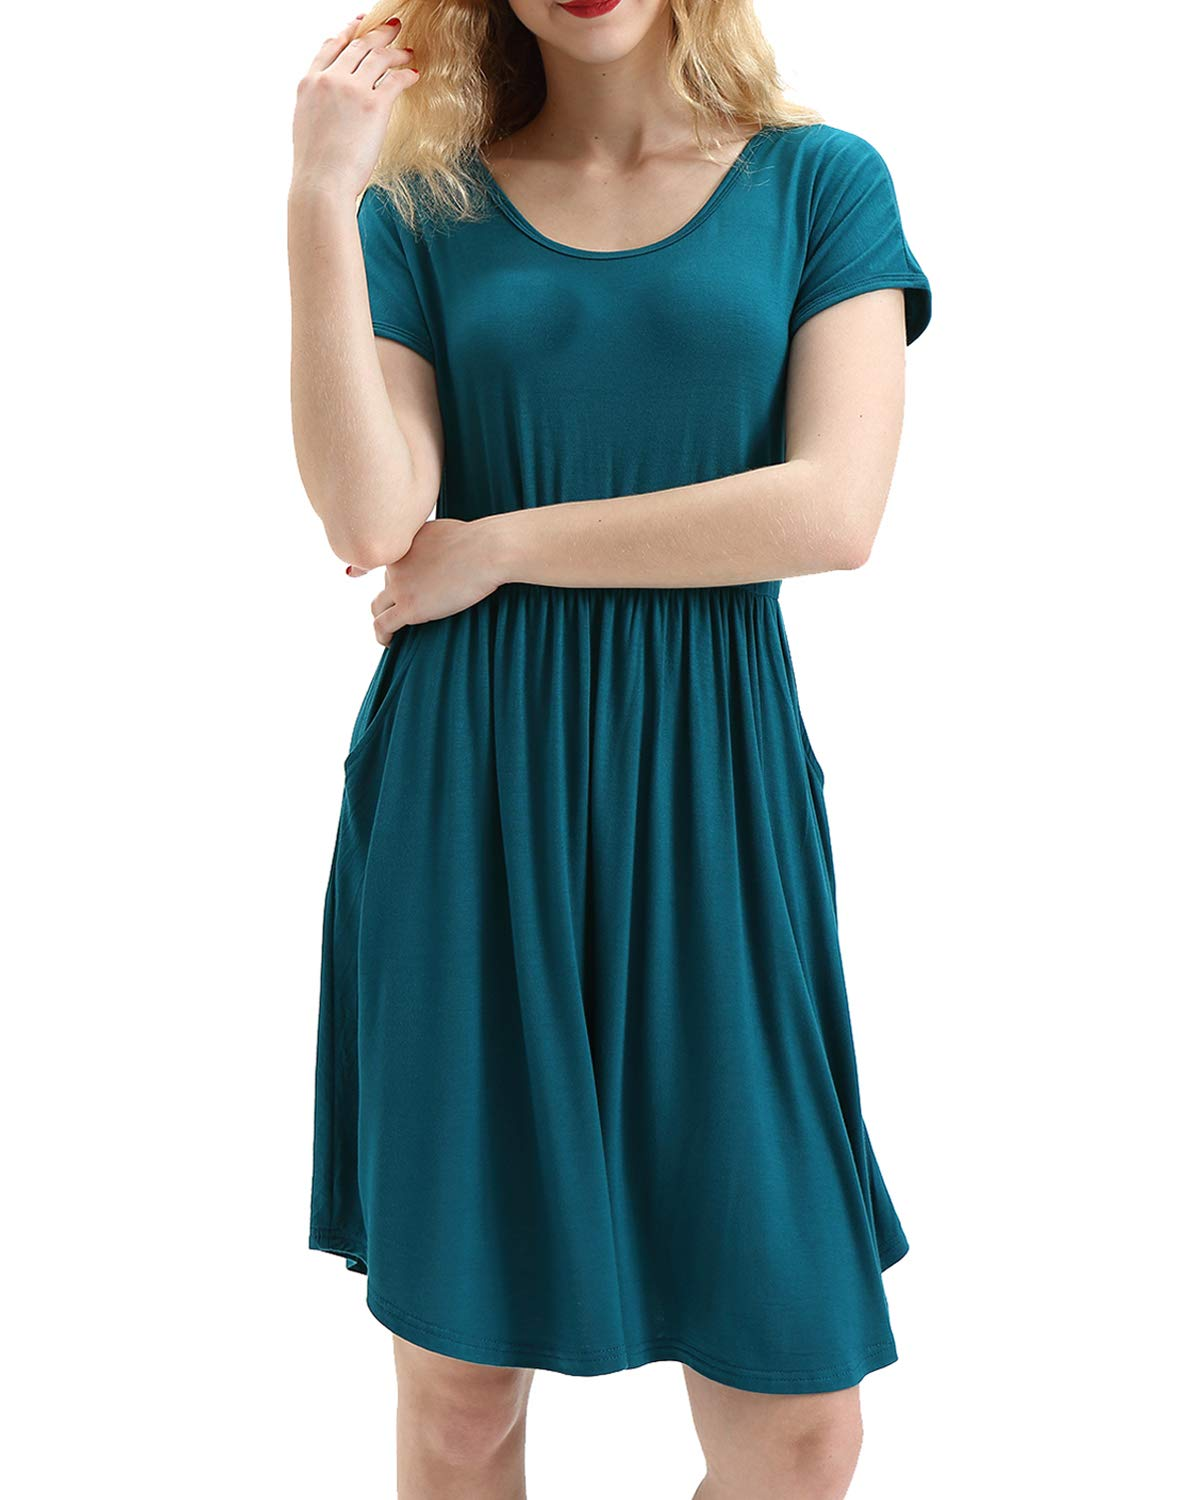 HUALAIMEI Pleated Dresses for Women, Ladies Scoop Neck Short Sleeve Vintage Midi Dress Casual Long Tunic with Pockets Knee Length Shirts Dark Cyan L